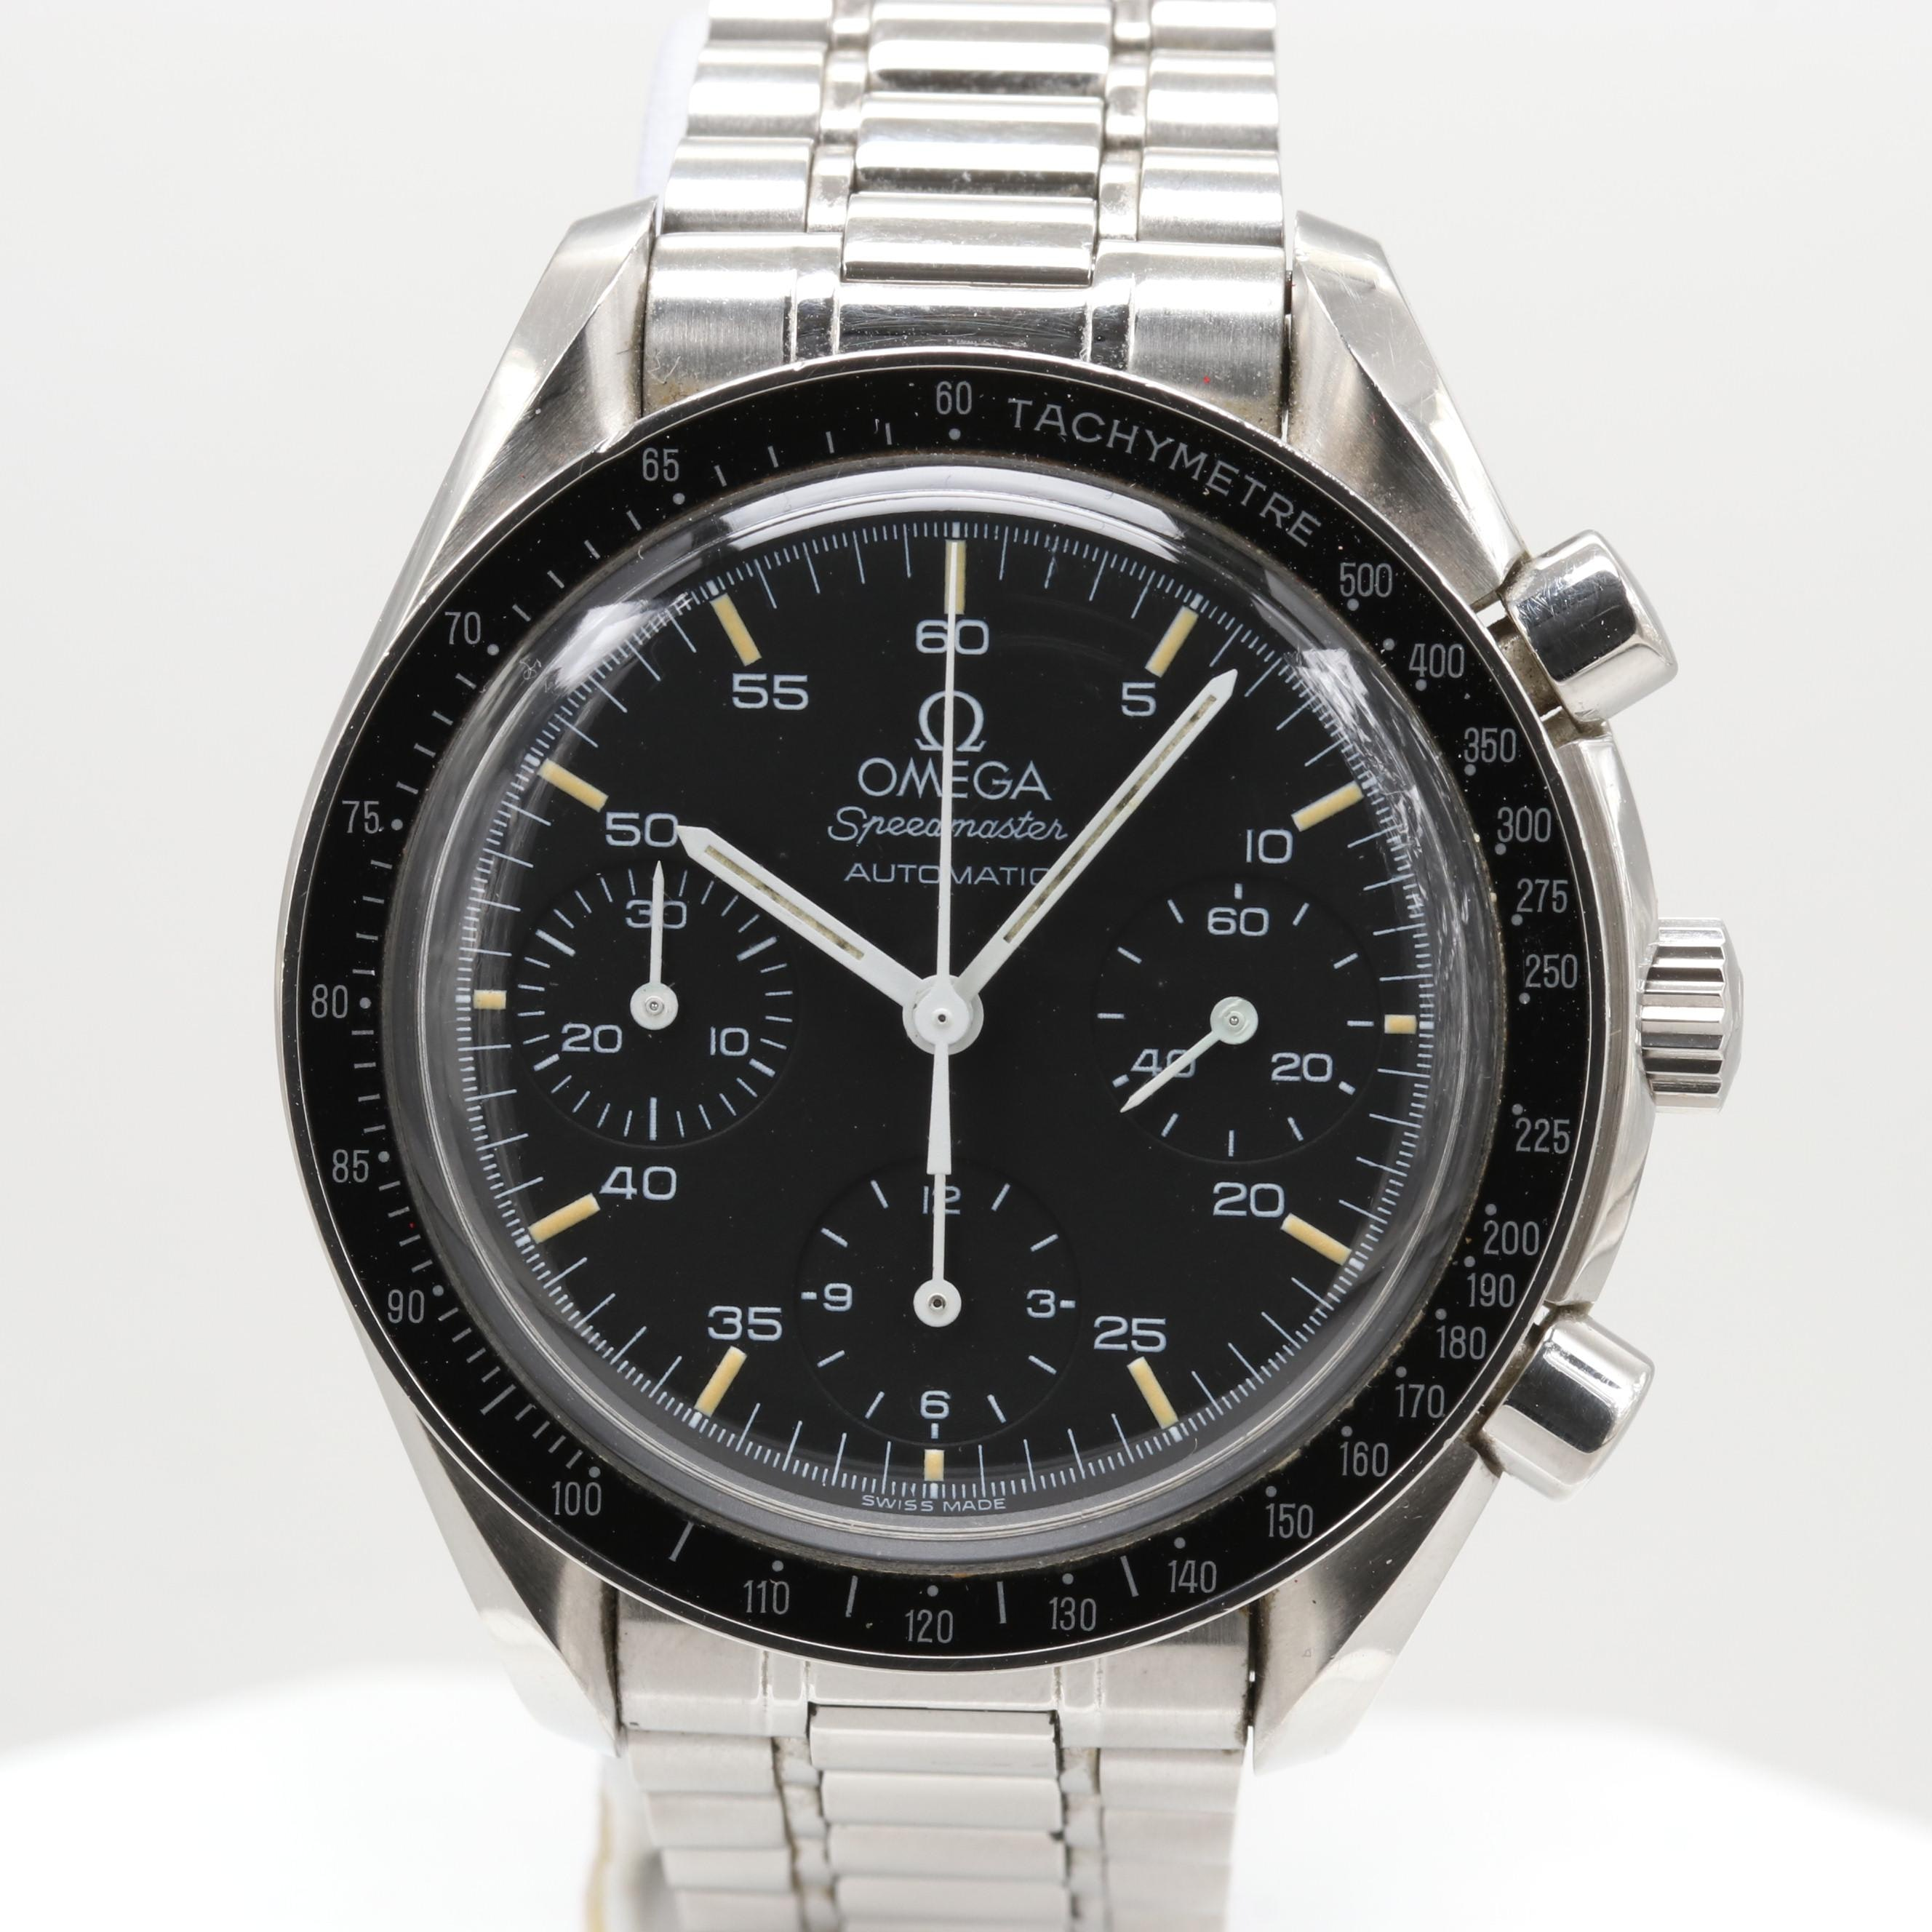 Omega Speedmaster Reduced Automatic Chronograph Wristwatch, 1997